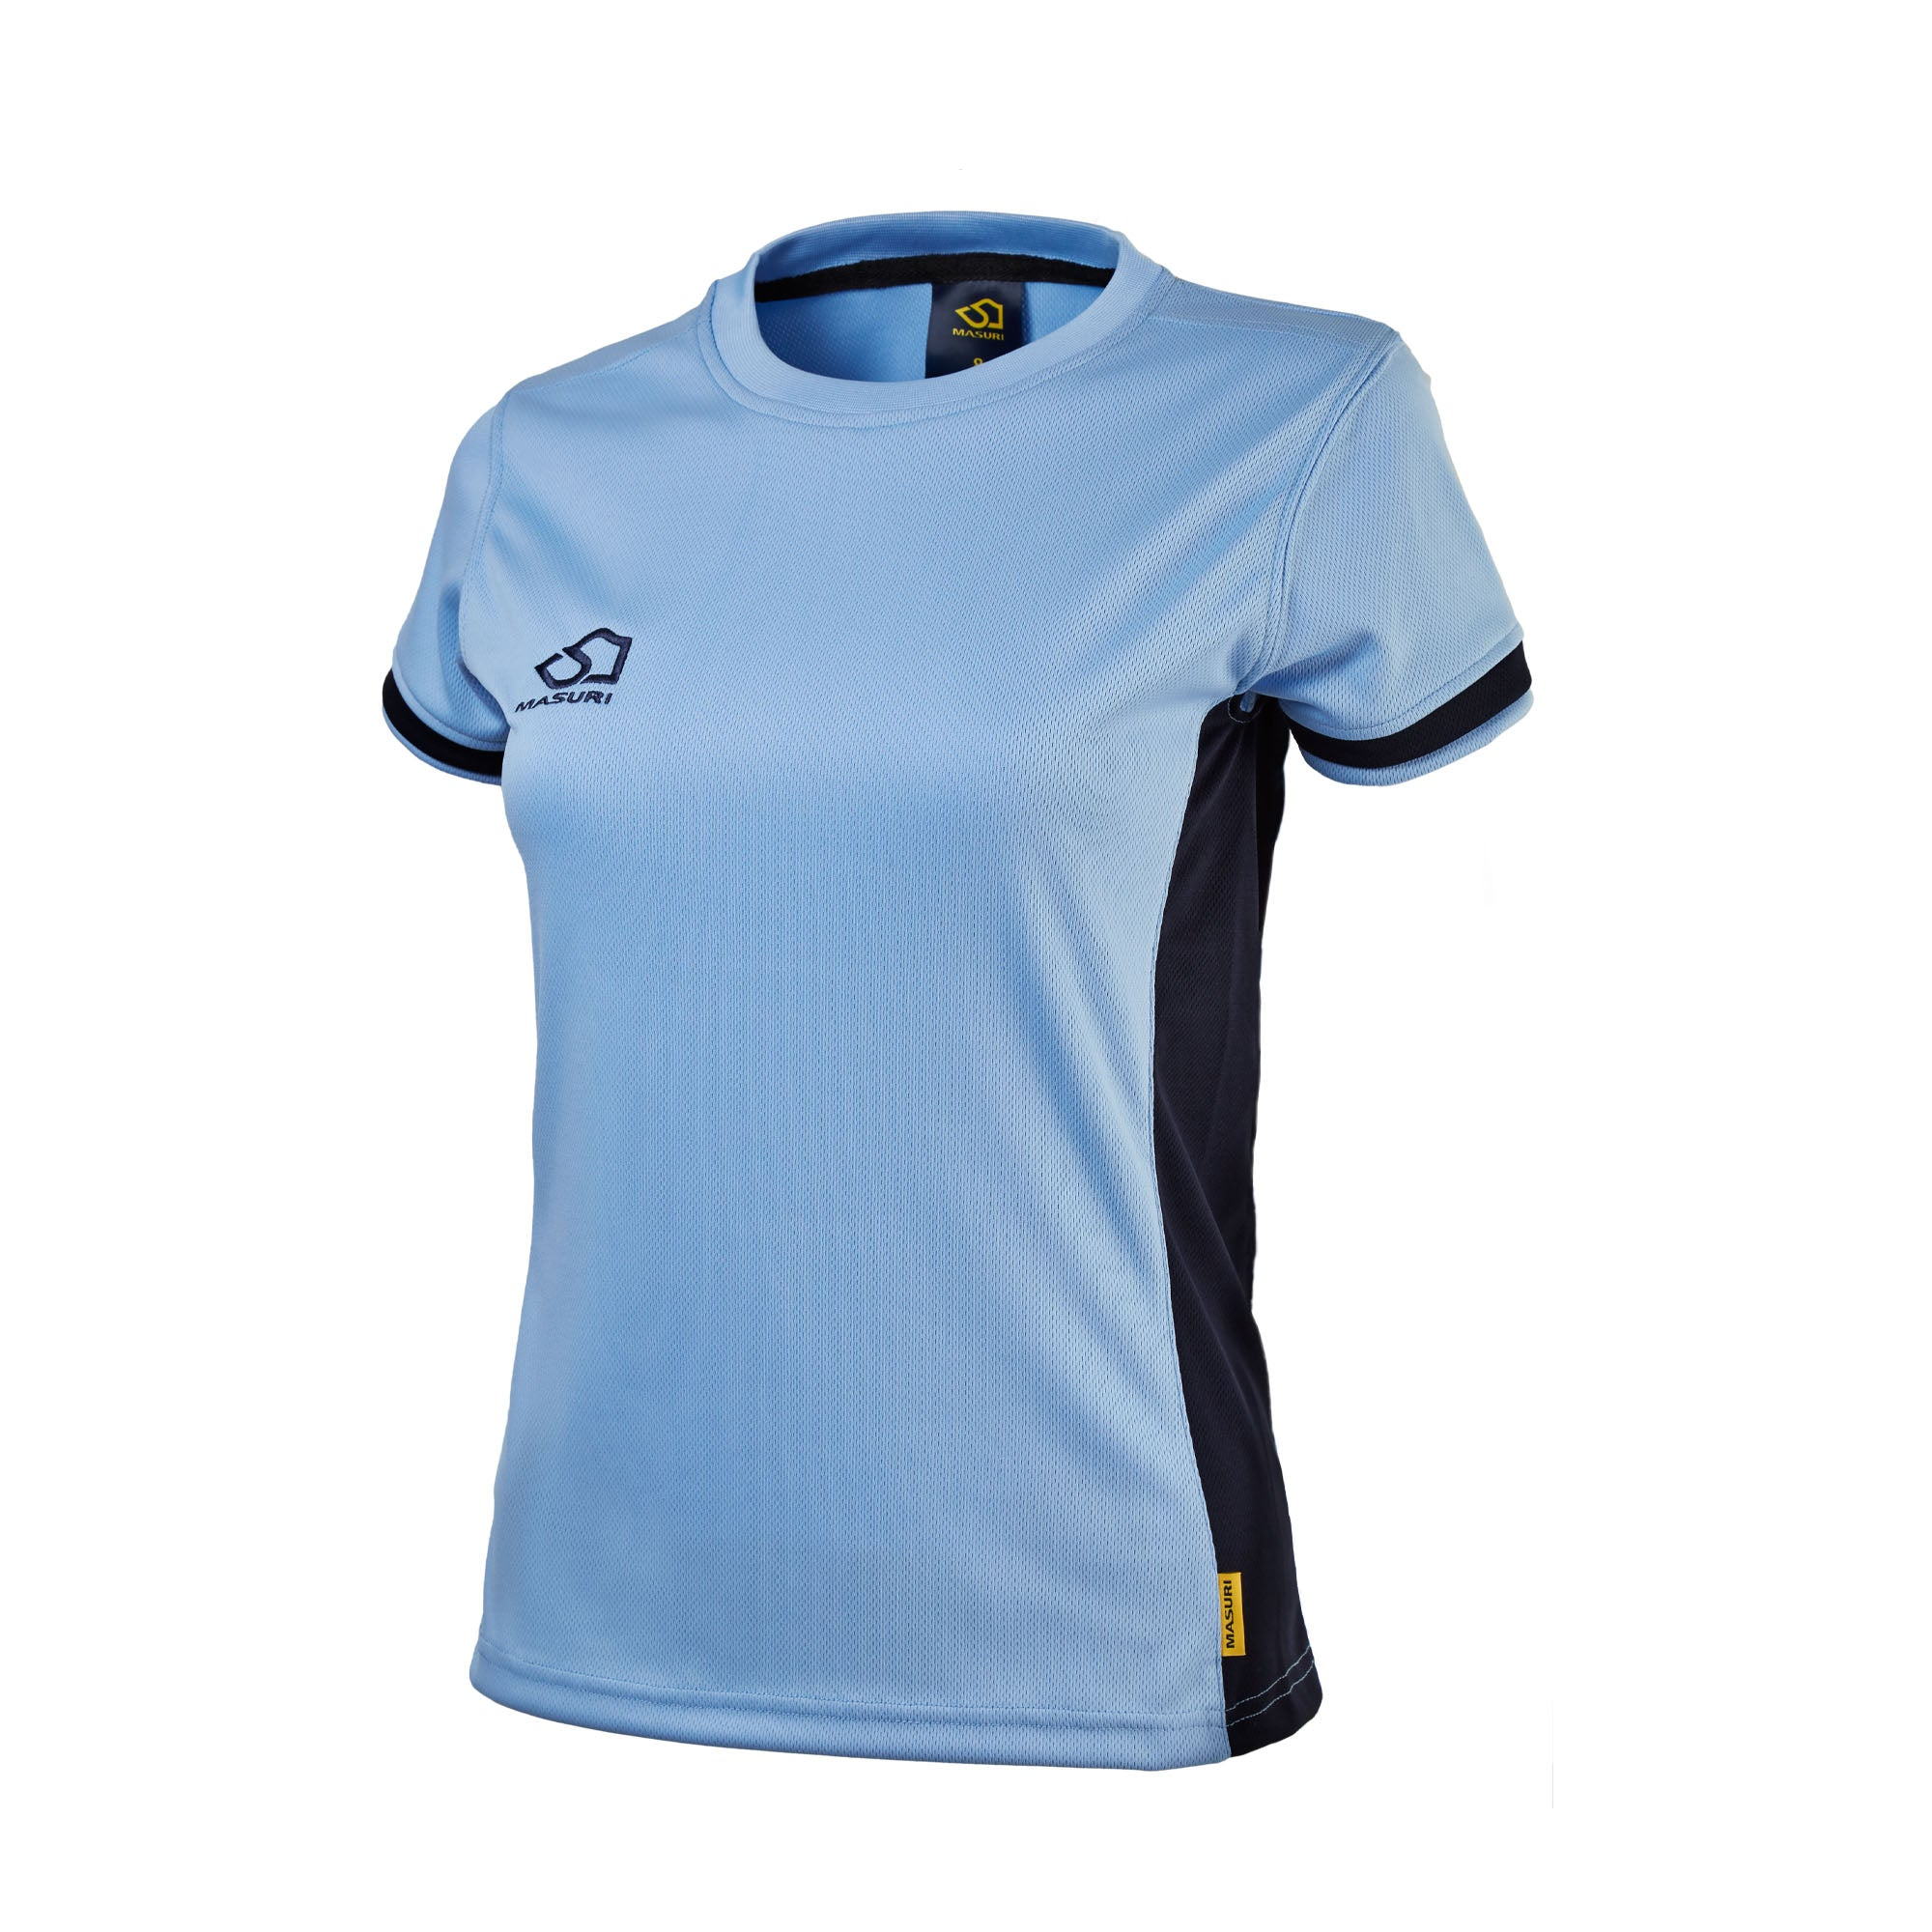 LADIES MASURI TRAINING T-SHIRT